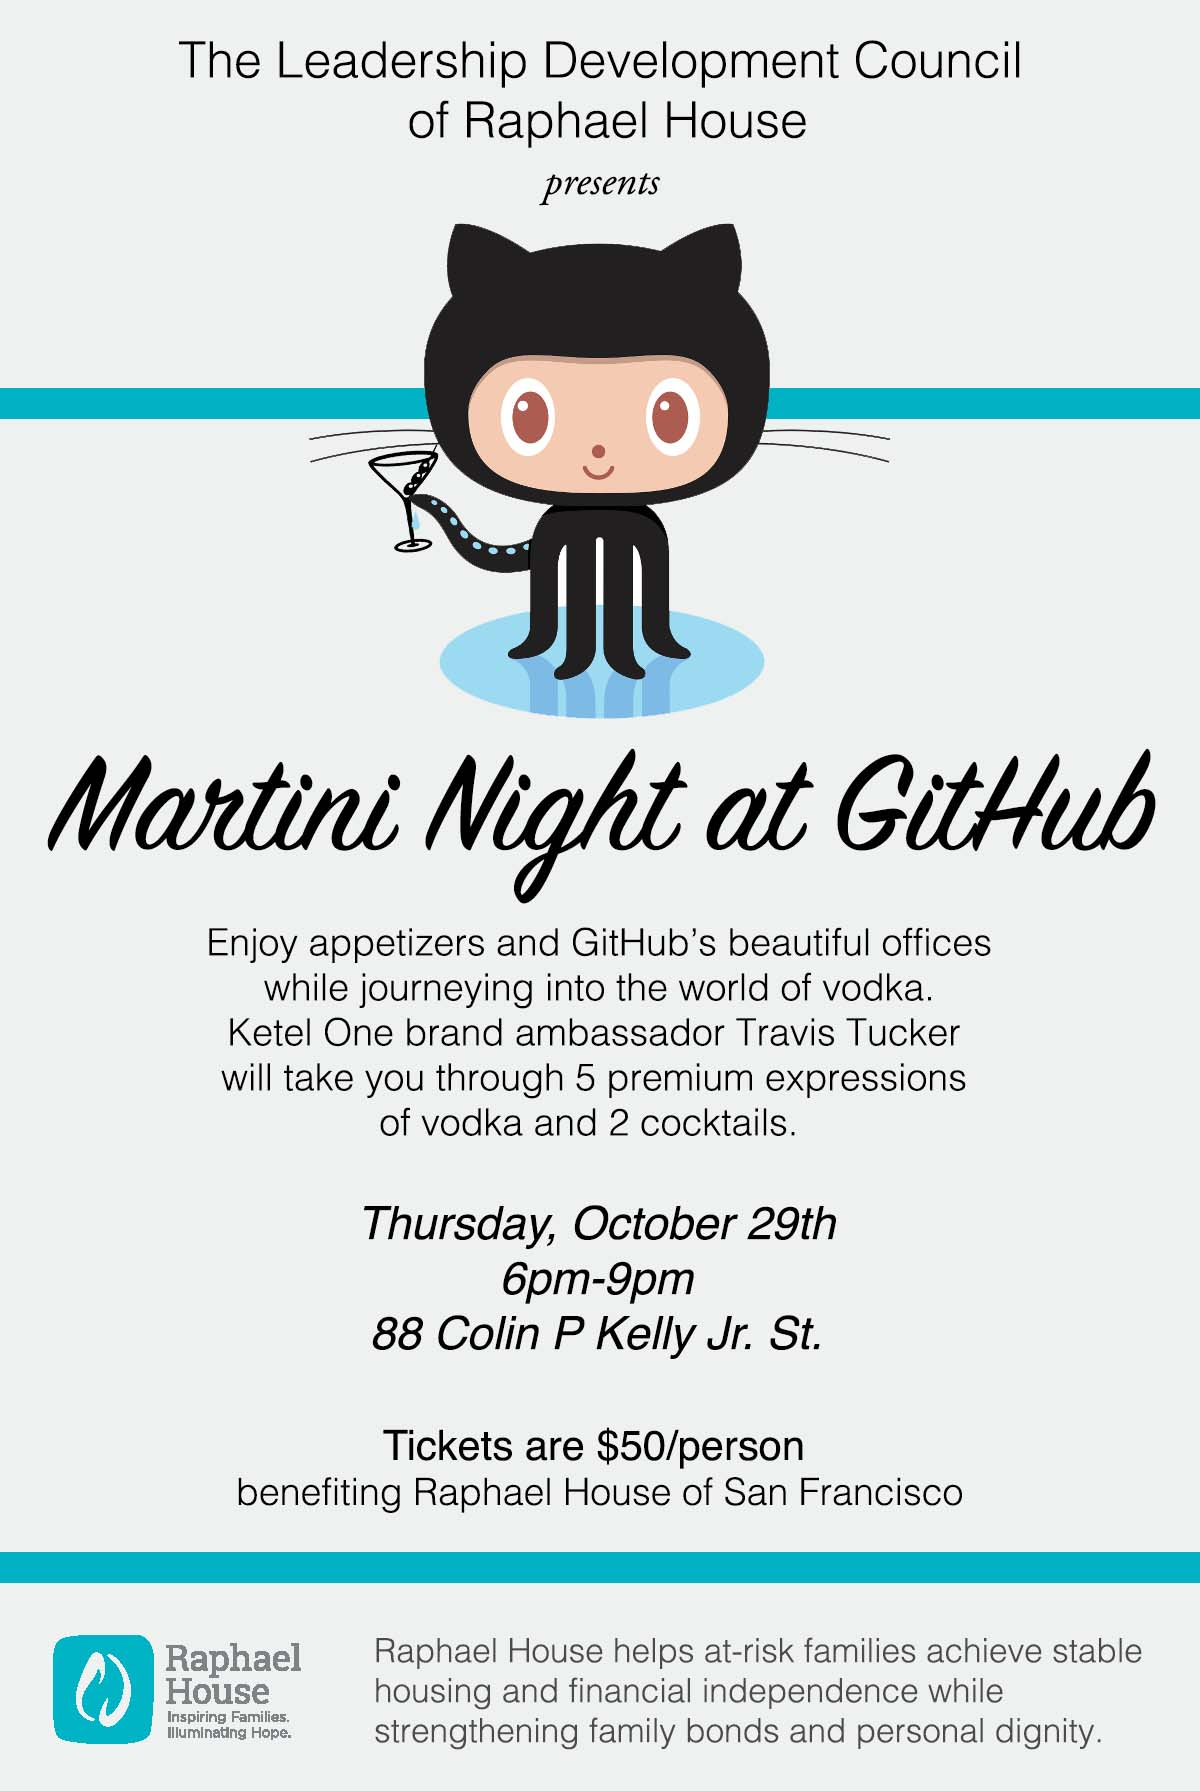 The Leadership Development Council of Raphael House presents Martini Night at Github. Enjoy appetizers and GitHub's beautiful offices while journeying into the world of vodka. Ketel One brand ambassador Travis Tucker  will take you through 5 premium expressions of vodka and 2 cocktails. Thursday, October 29th  6pm-8pm  88 Colin P Kelly Jr St. Tickets are $50/person benefiting Raphael House of San Francisco. Raphael House helps at-risk families achieve stable housing and financial independence while strengthening family bonds and personal dignity.